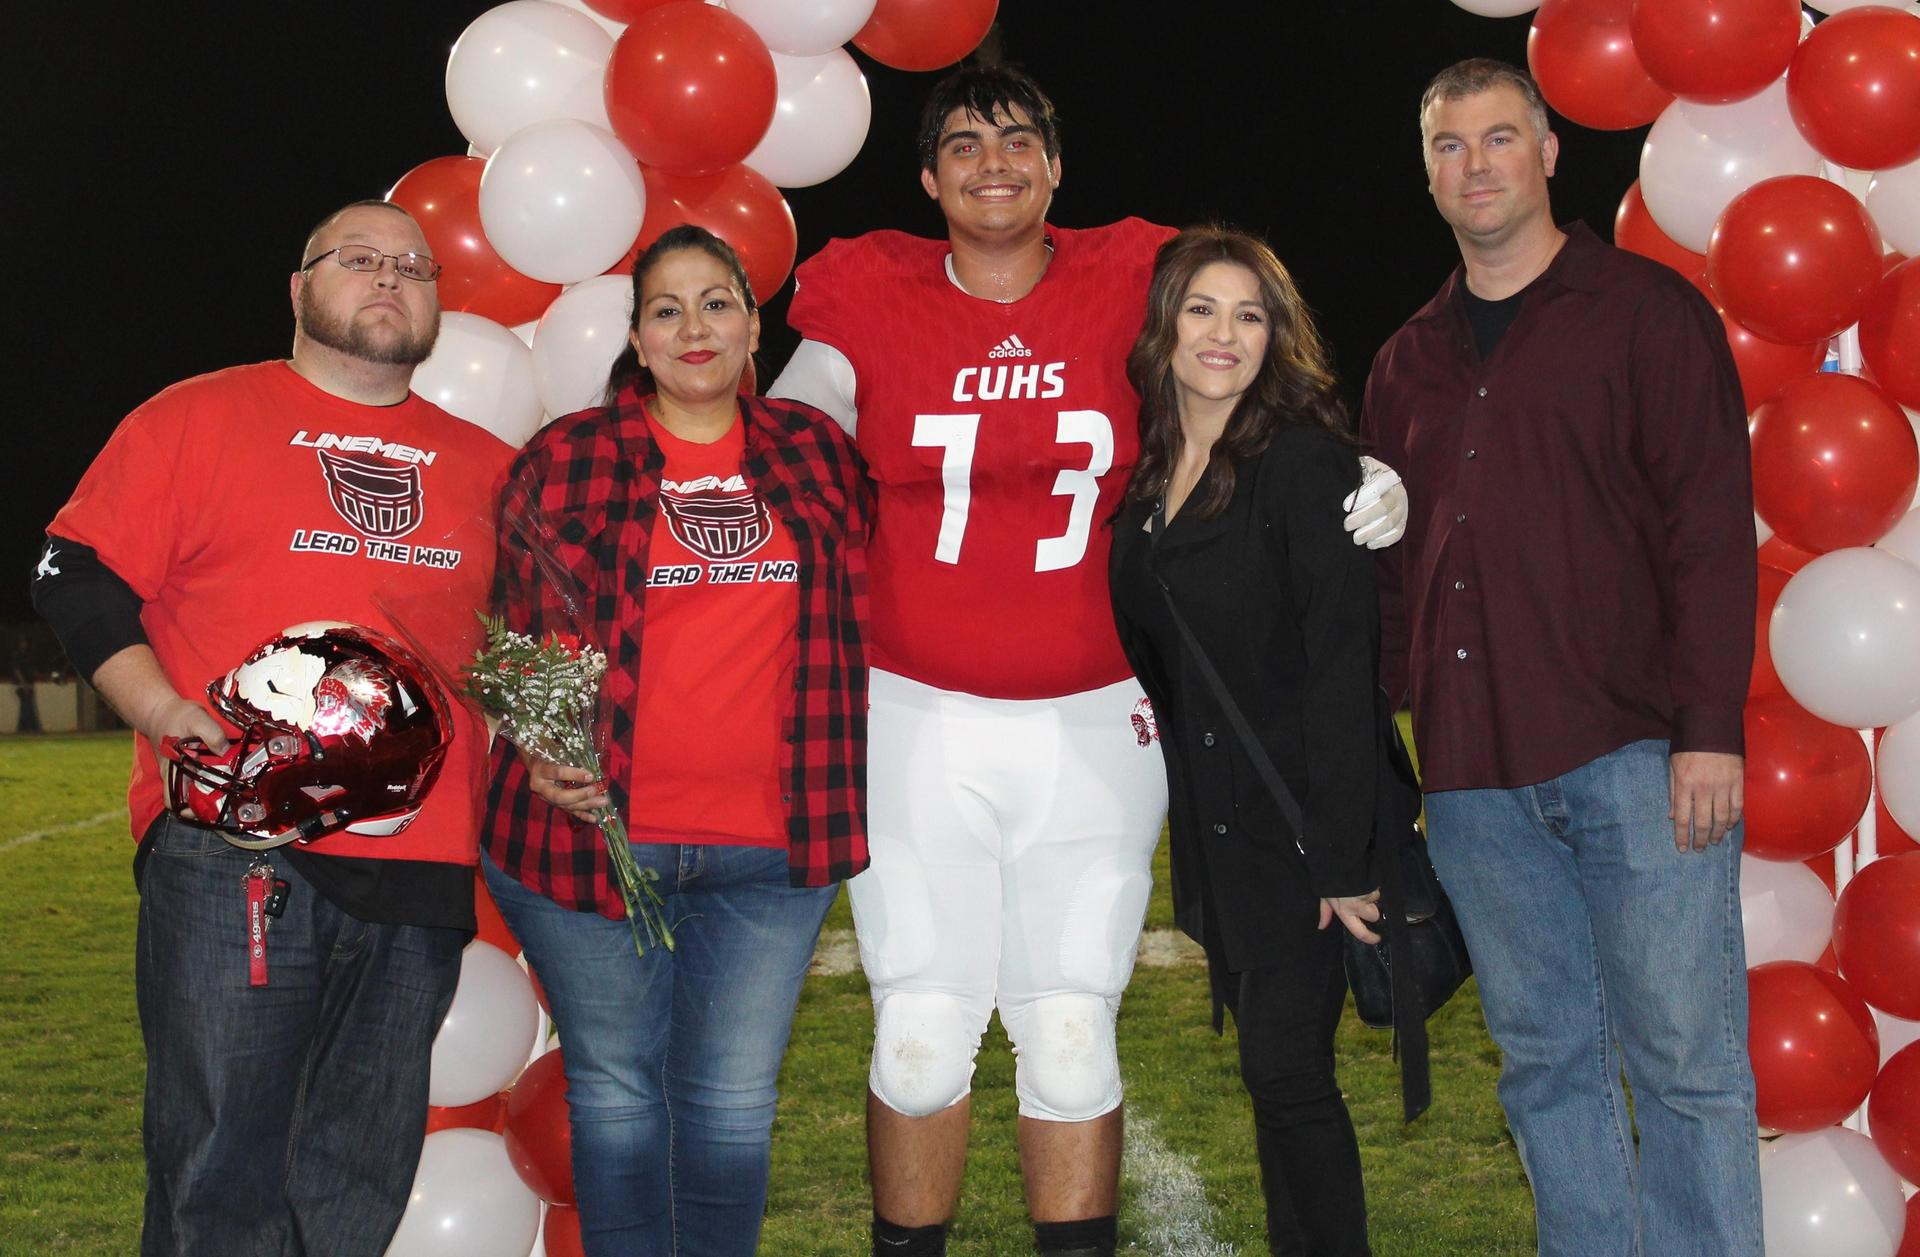 Isaiah Yates and his supporters at Senior Night